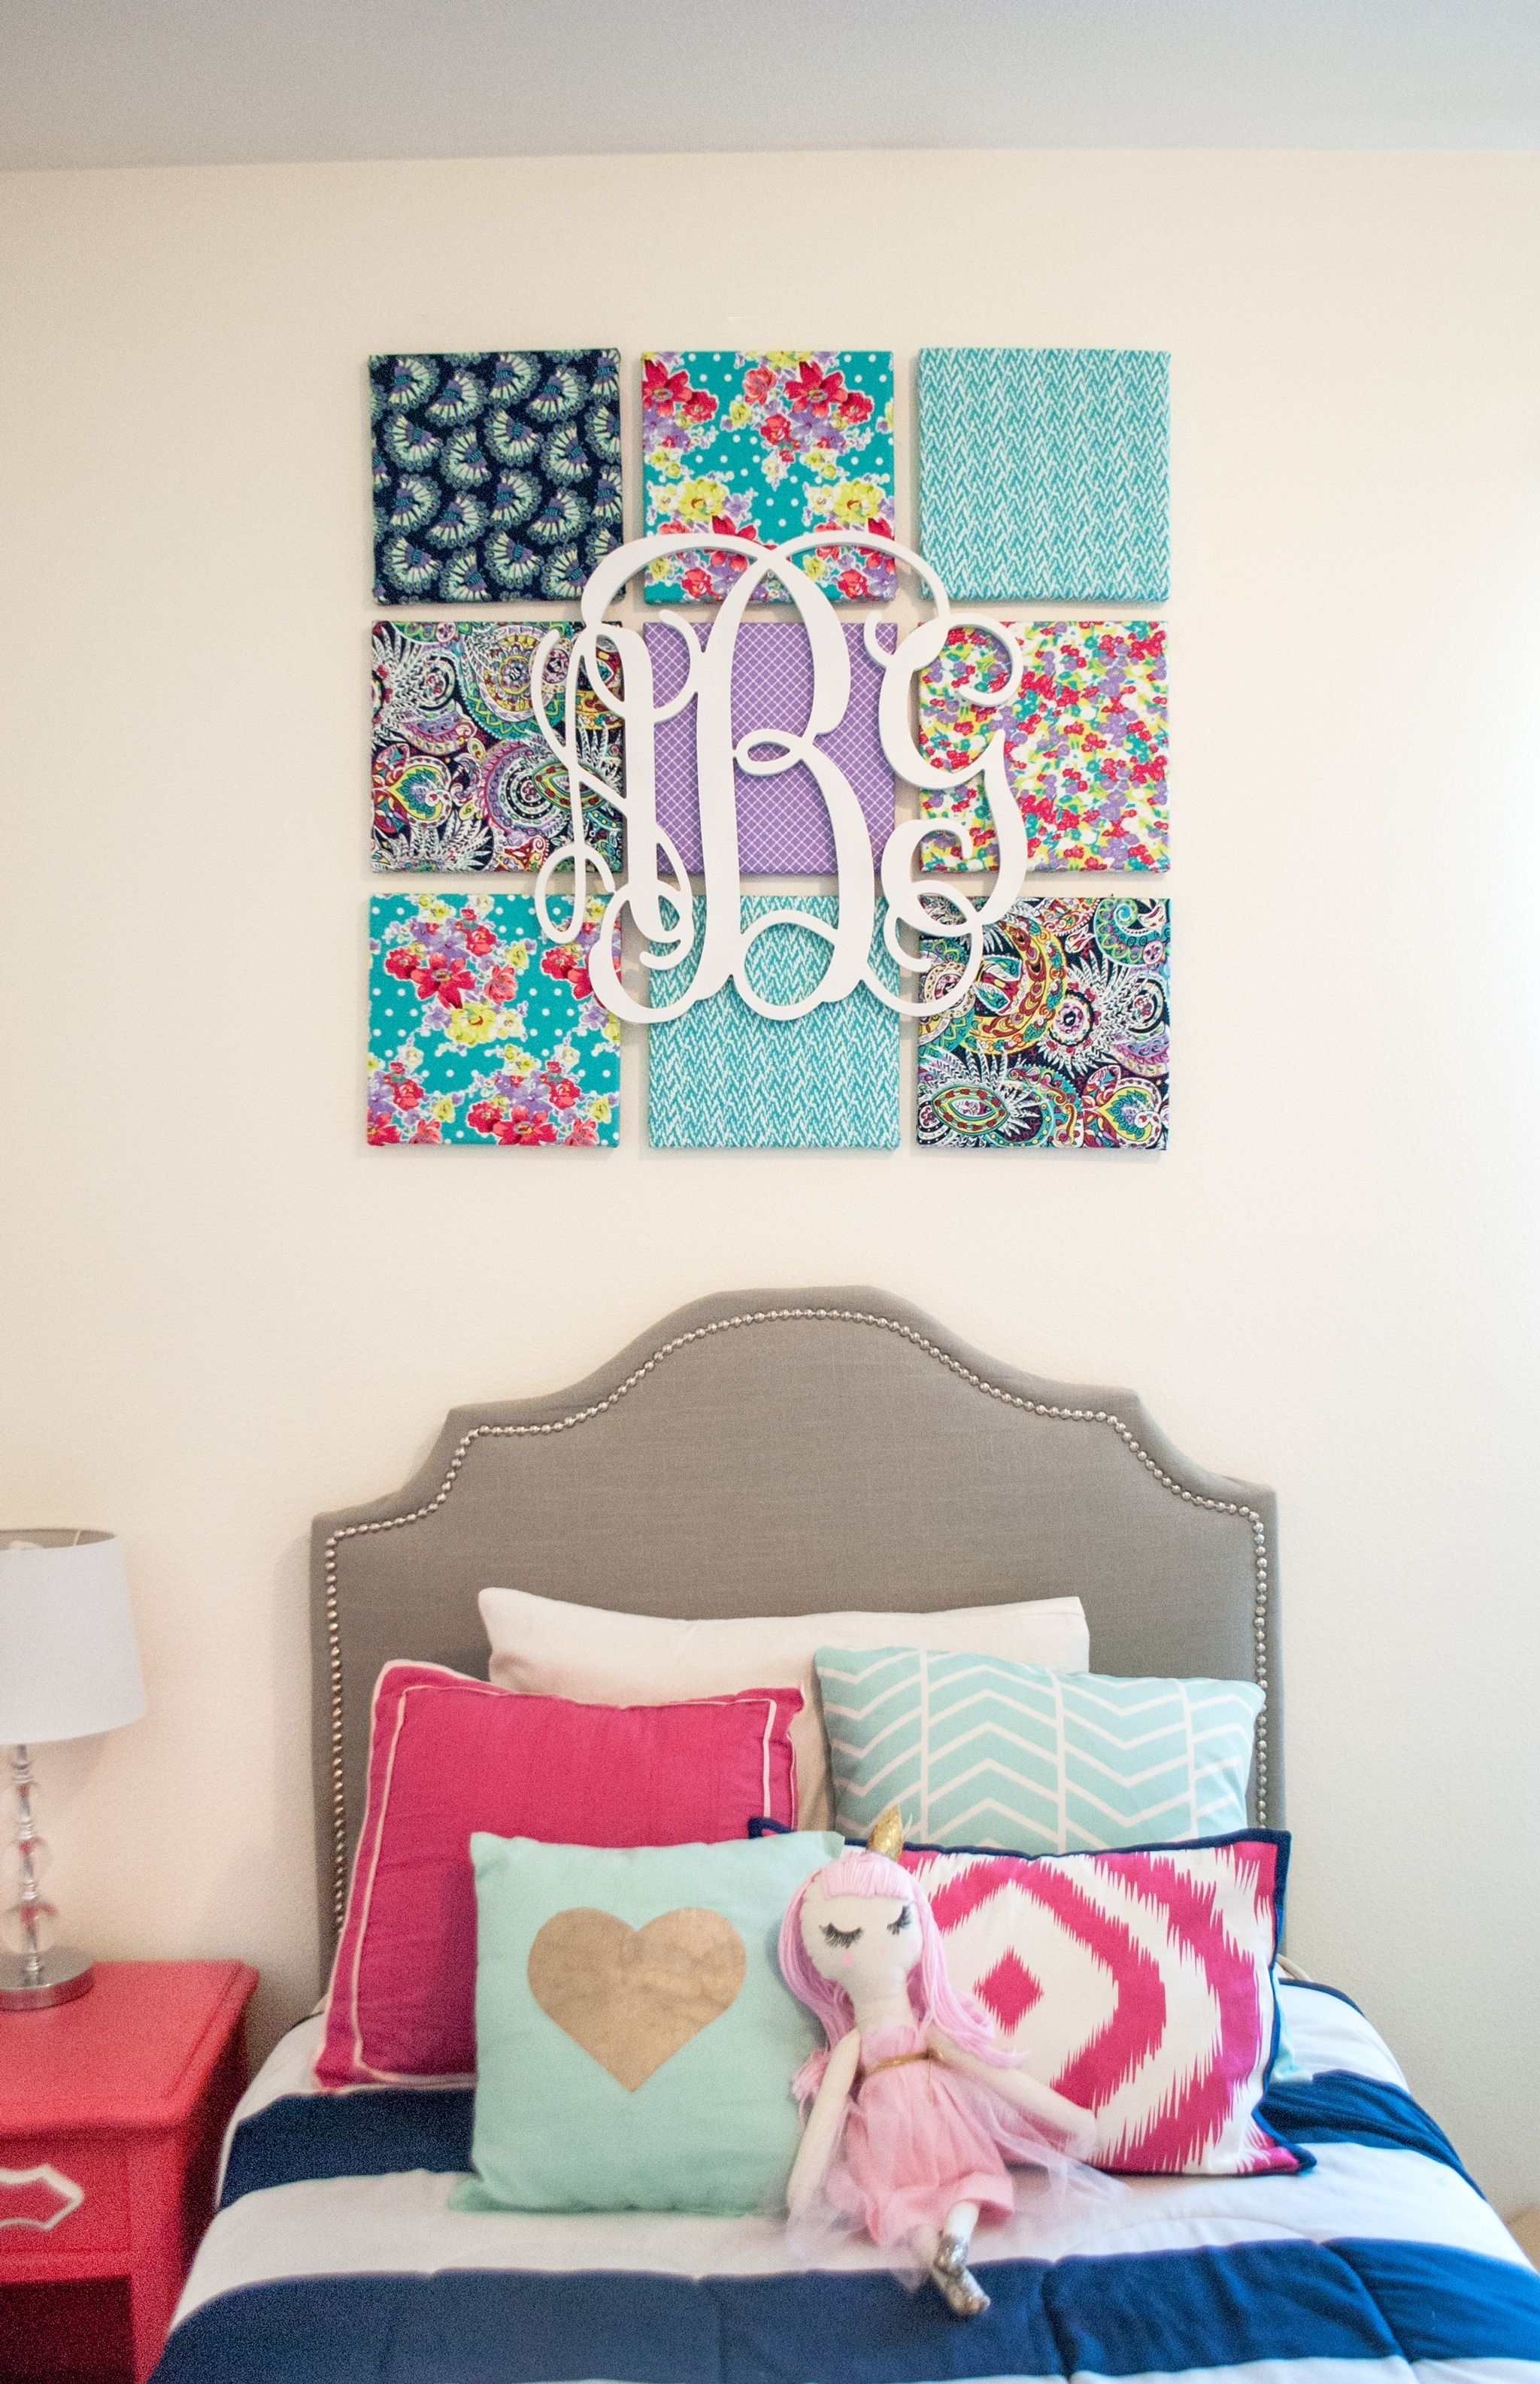 Diy Fabric Wall Art | Monogram Wall, Kids Rooms And Monograms With Regard To Most Current Dreamcatcher Fabric Wall Art (View 8 of 15)